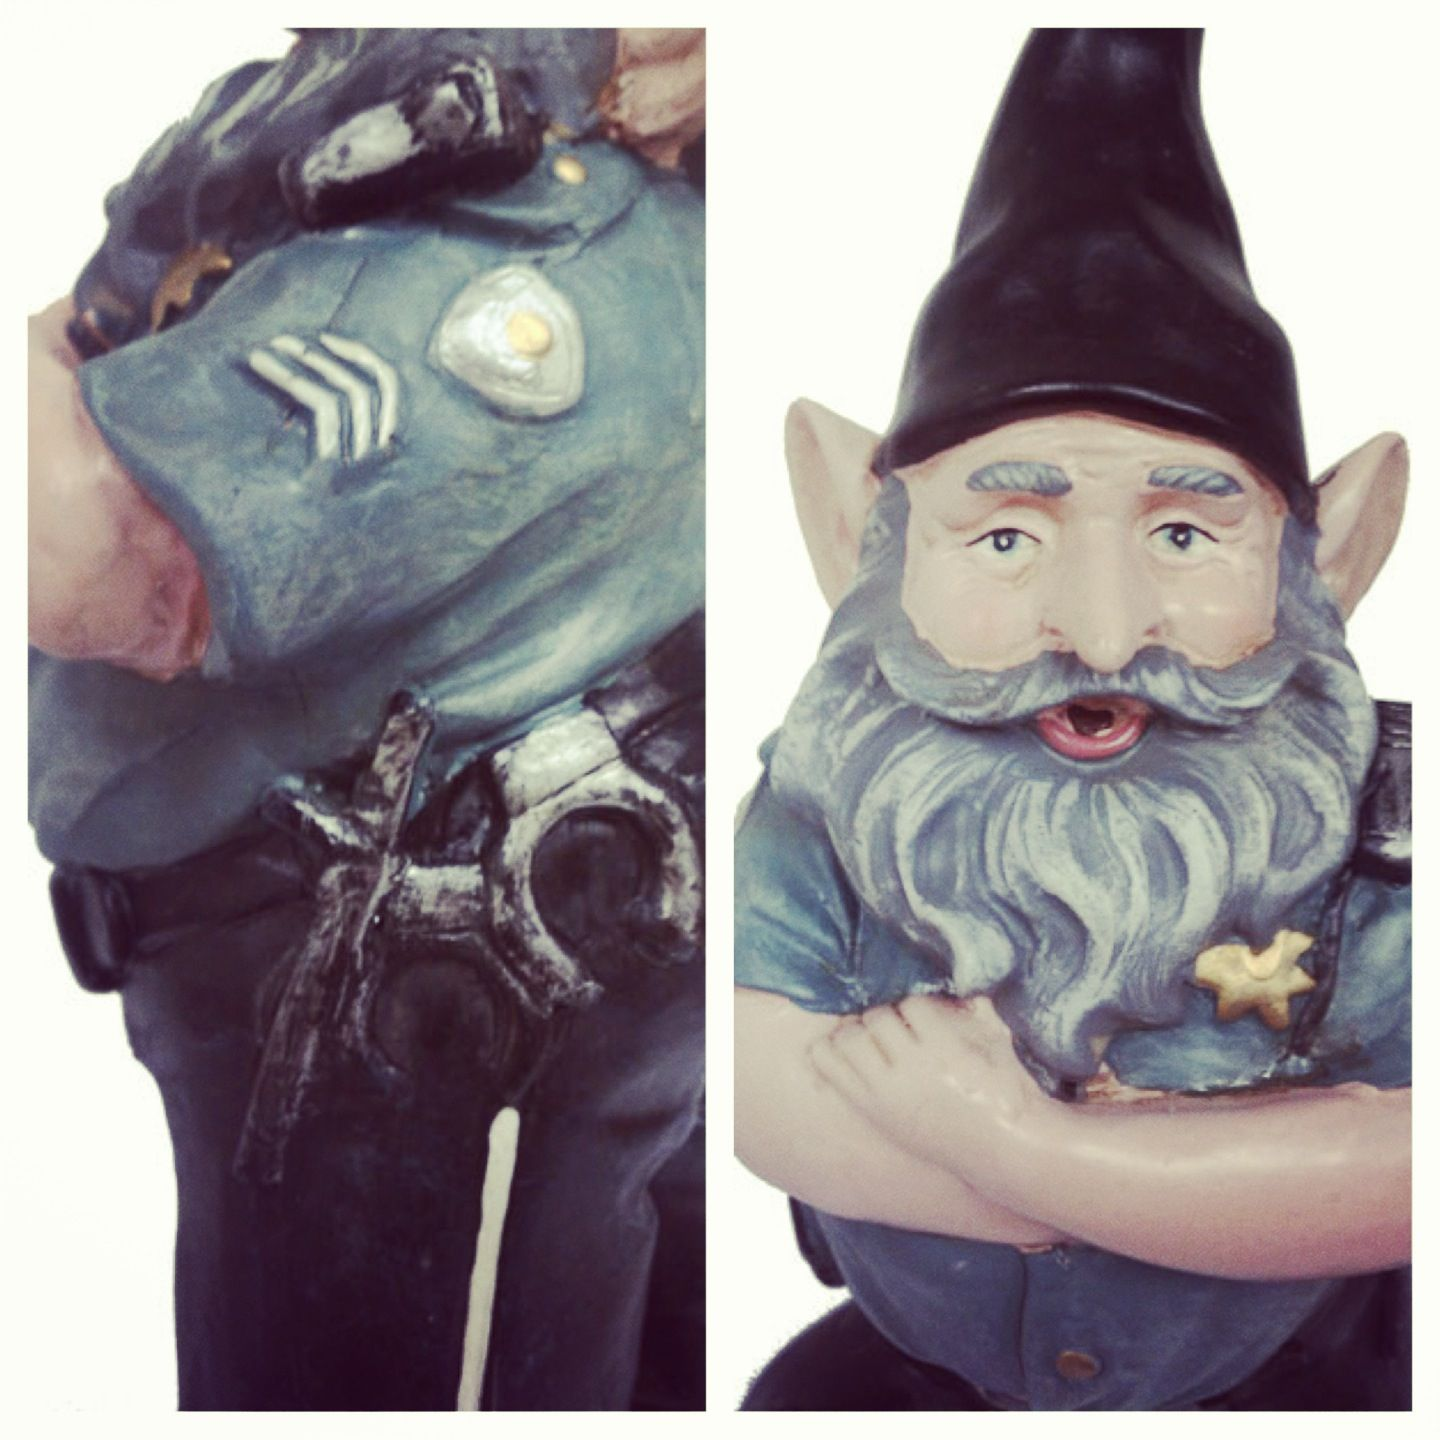 Gnome Garden: Love This Lawn Gnome! I Must Have It.